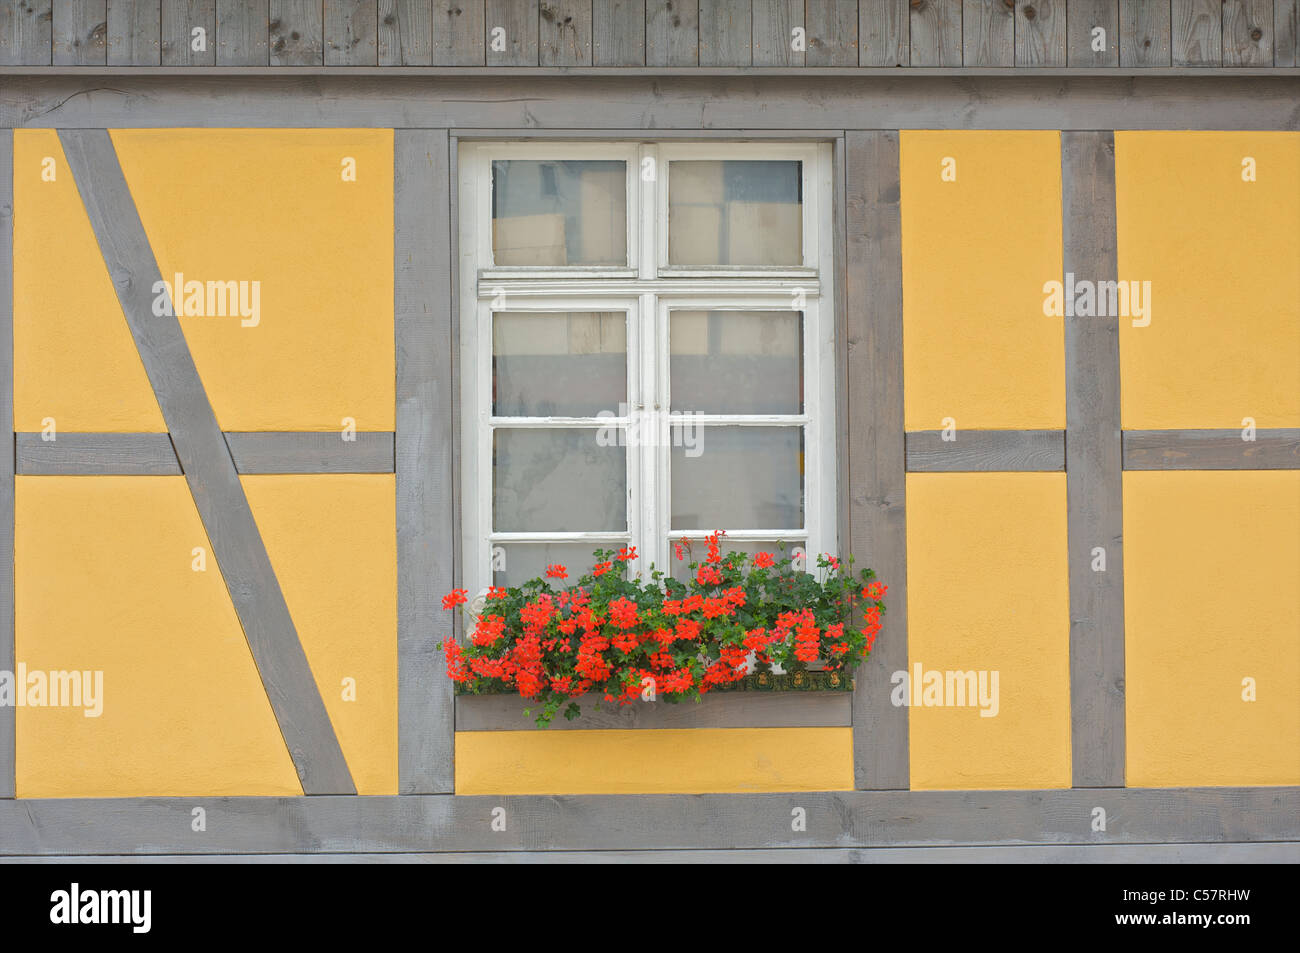 Detail of an old house with fachwerk or half-timbering in the city of Haslach, Schwarzwald, Baden-Wurttemberg, Germany - Stock Image